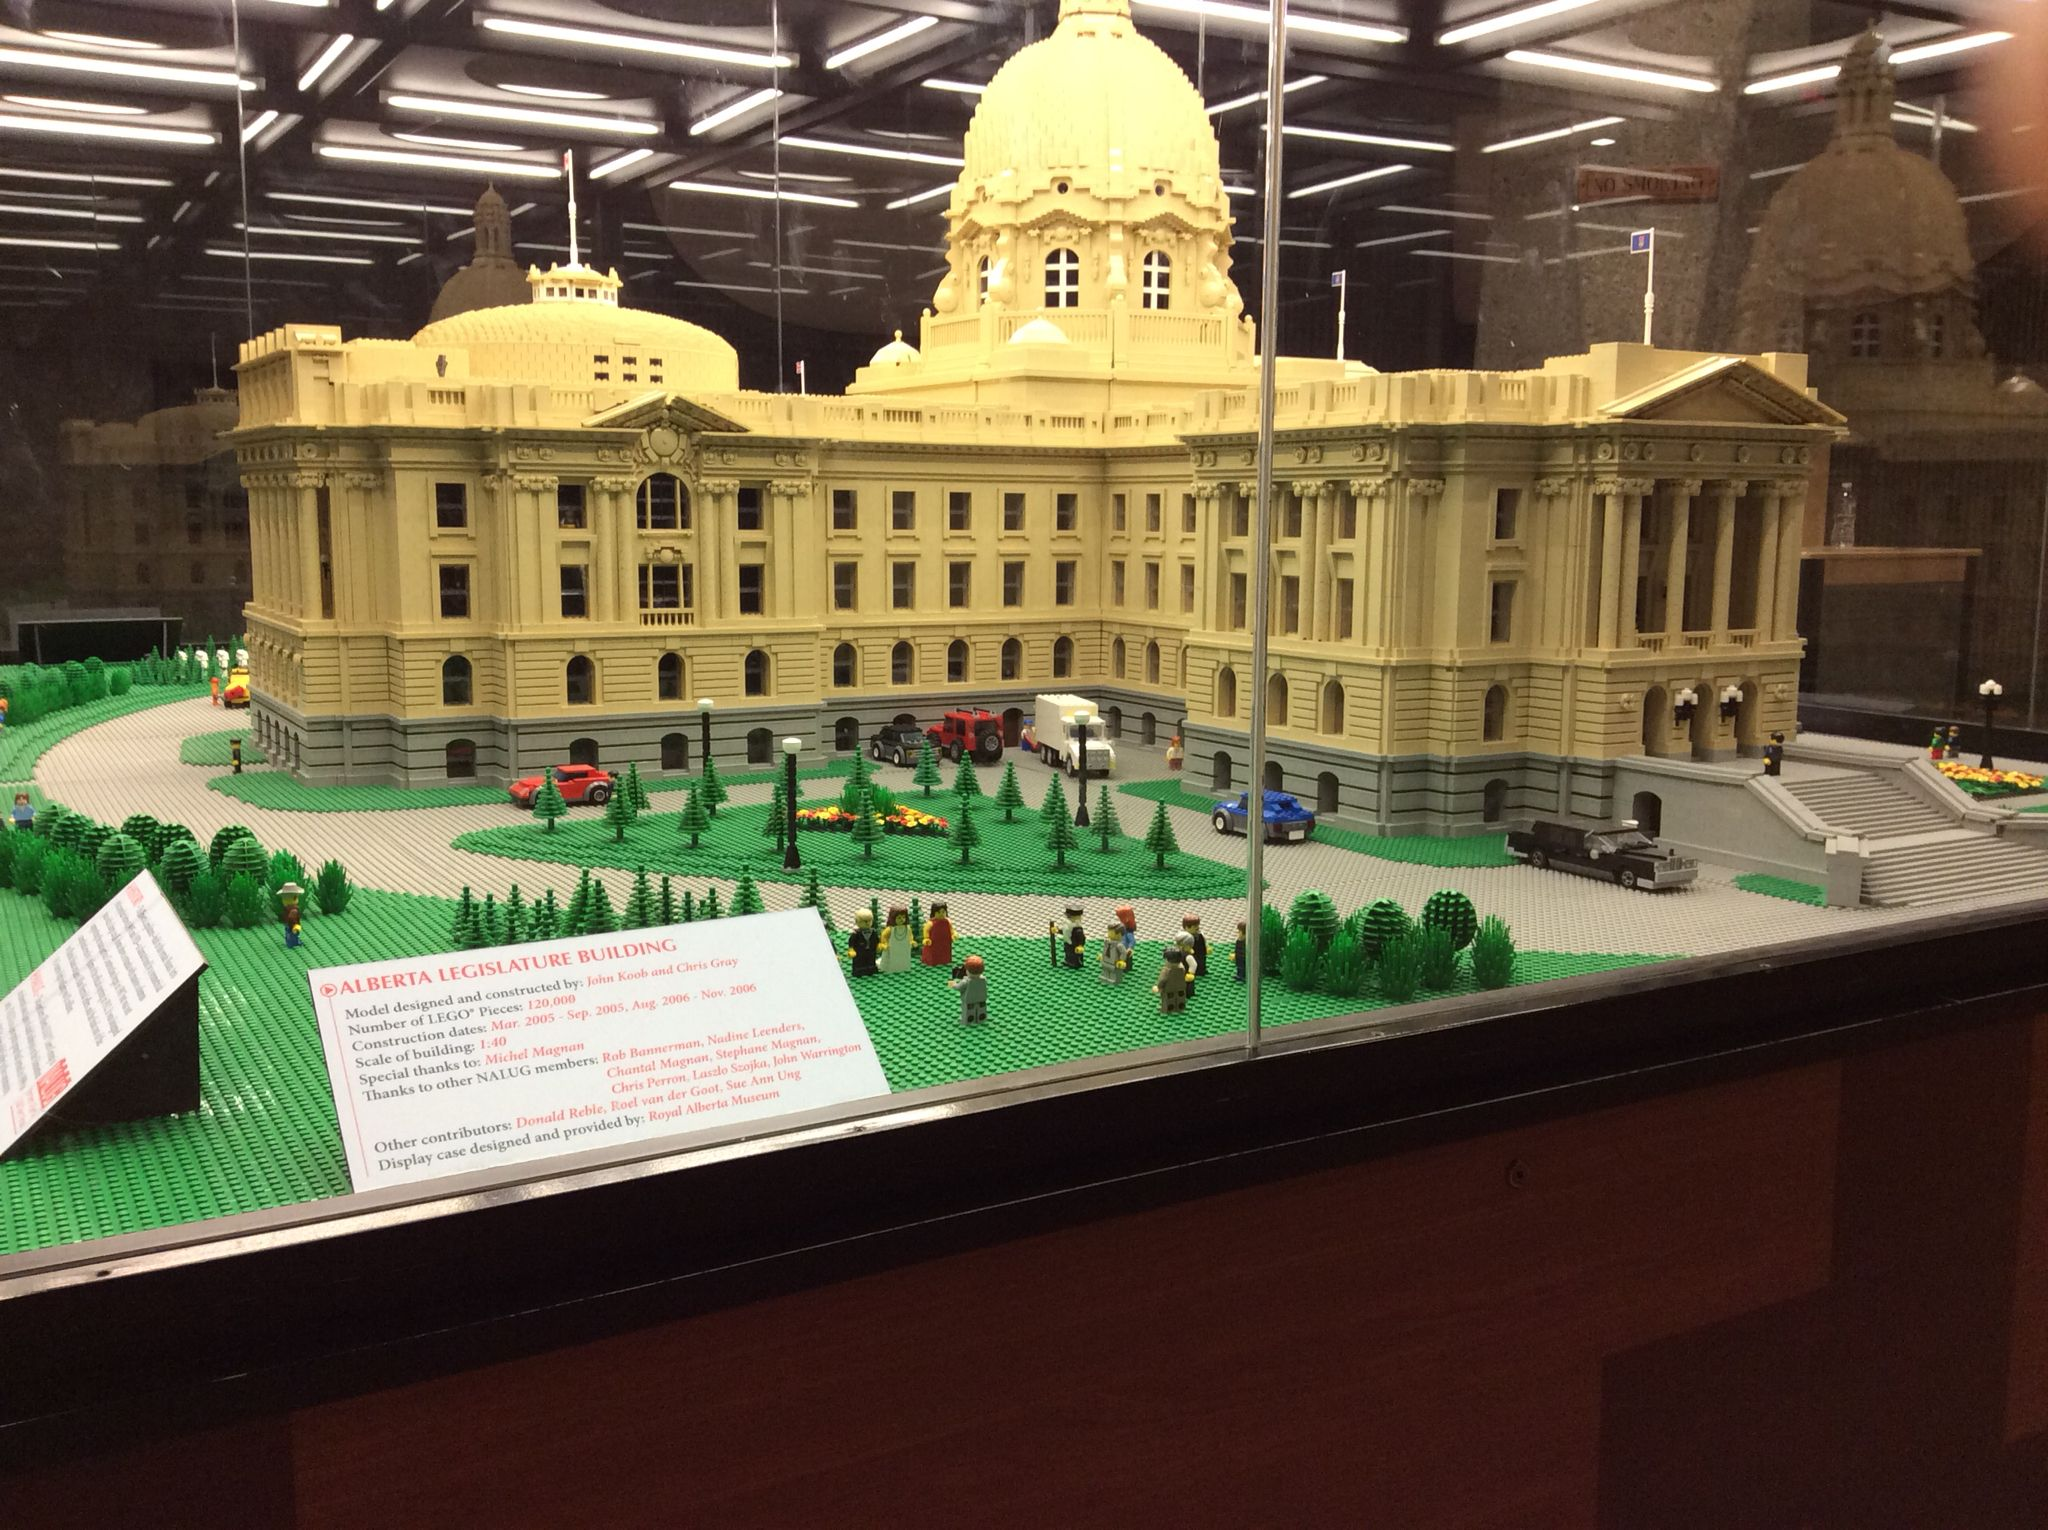 The Legislative Building Made Out Of Lego